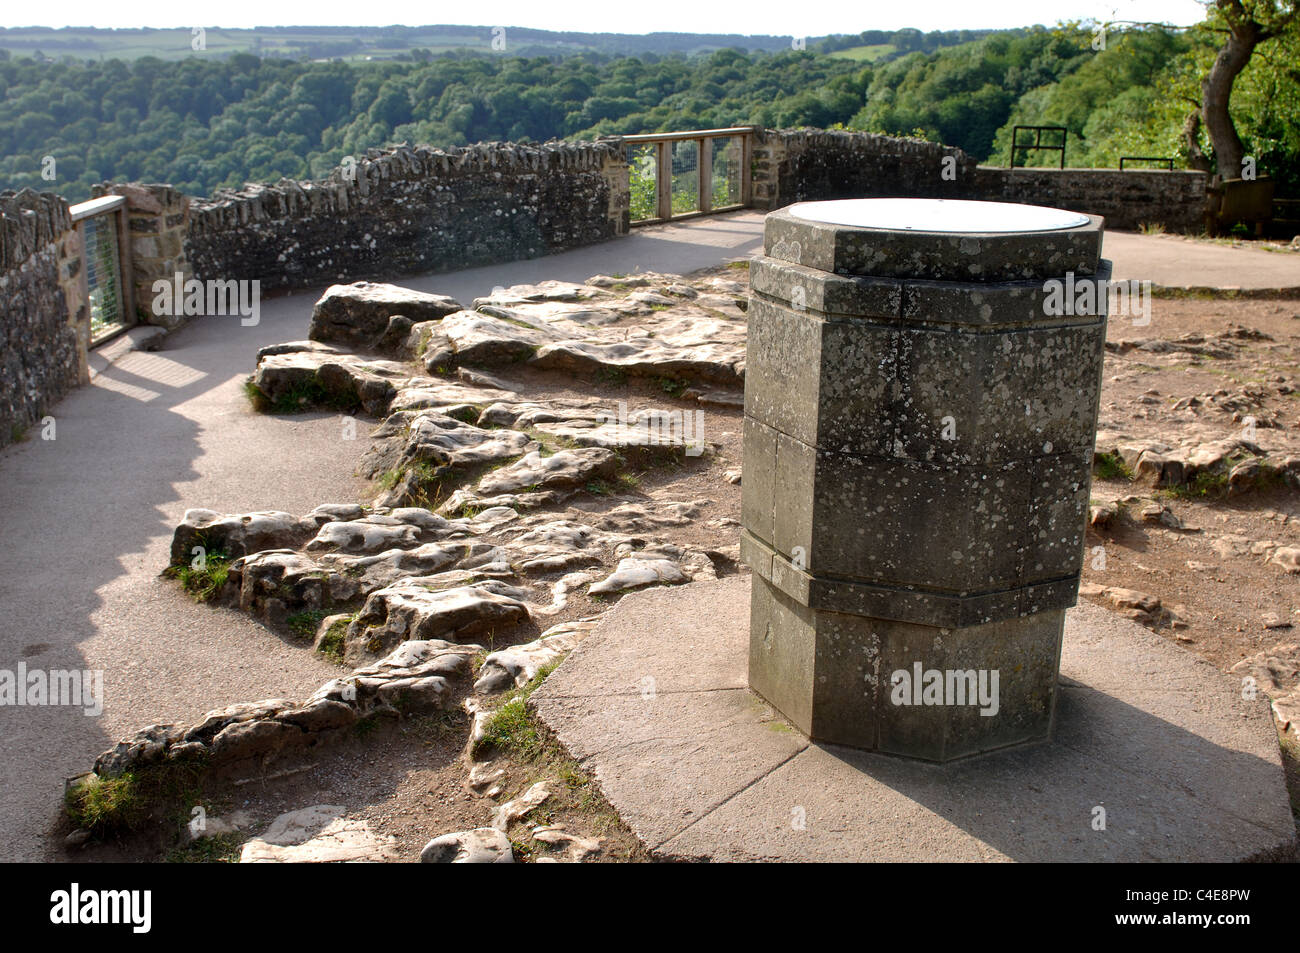 Topograph at Yat Rock, Symonds Yat, Wye Valley, Gloucestershire, England, UK - Stock Image